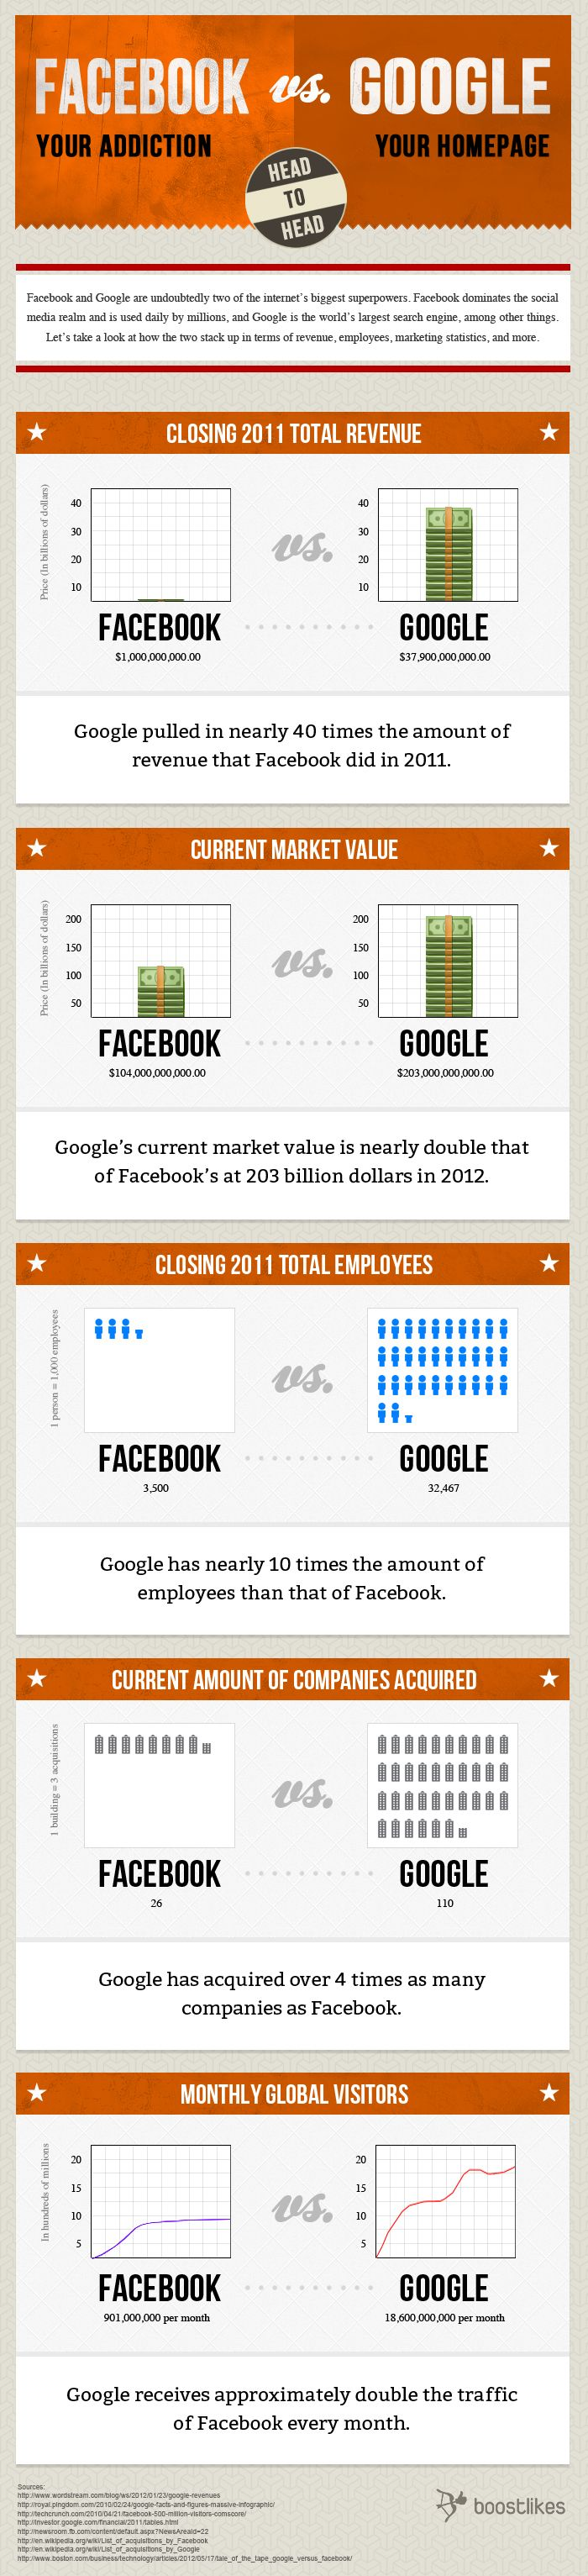 This interesting infographic depicting key numbers for #Facebook vs. #Google makes it clear that, despite the hype around Facebook's IPO, it's no contest, really.